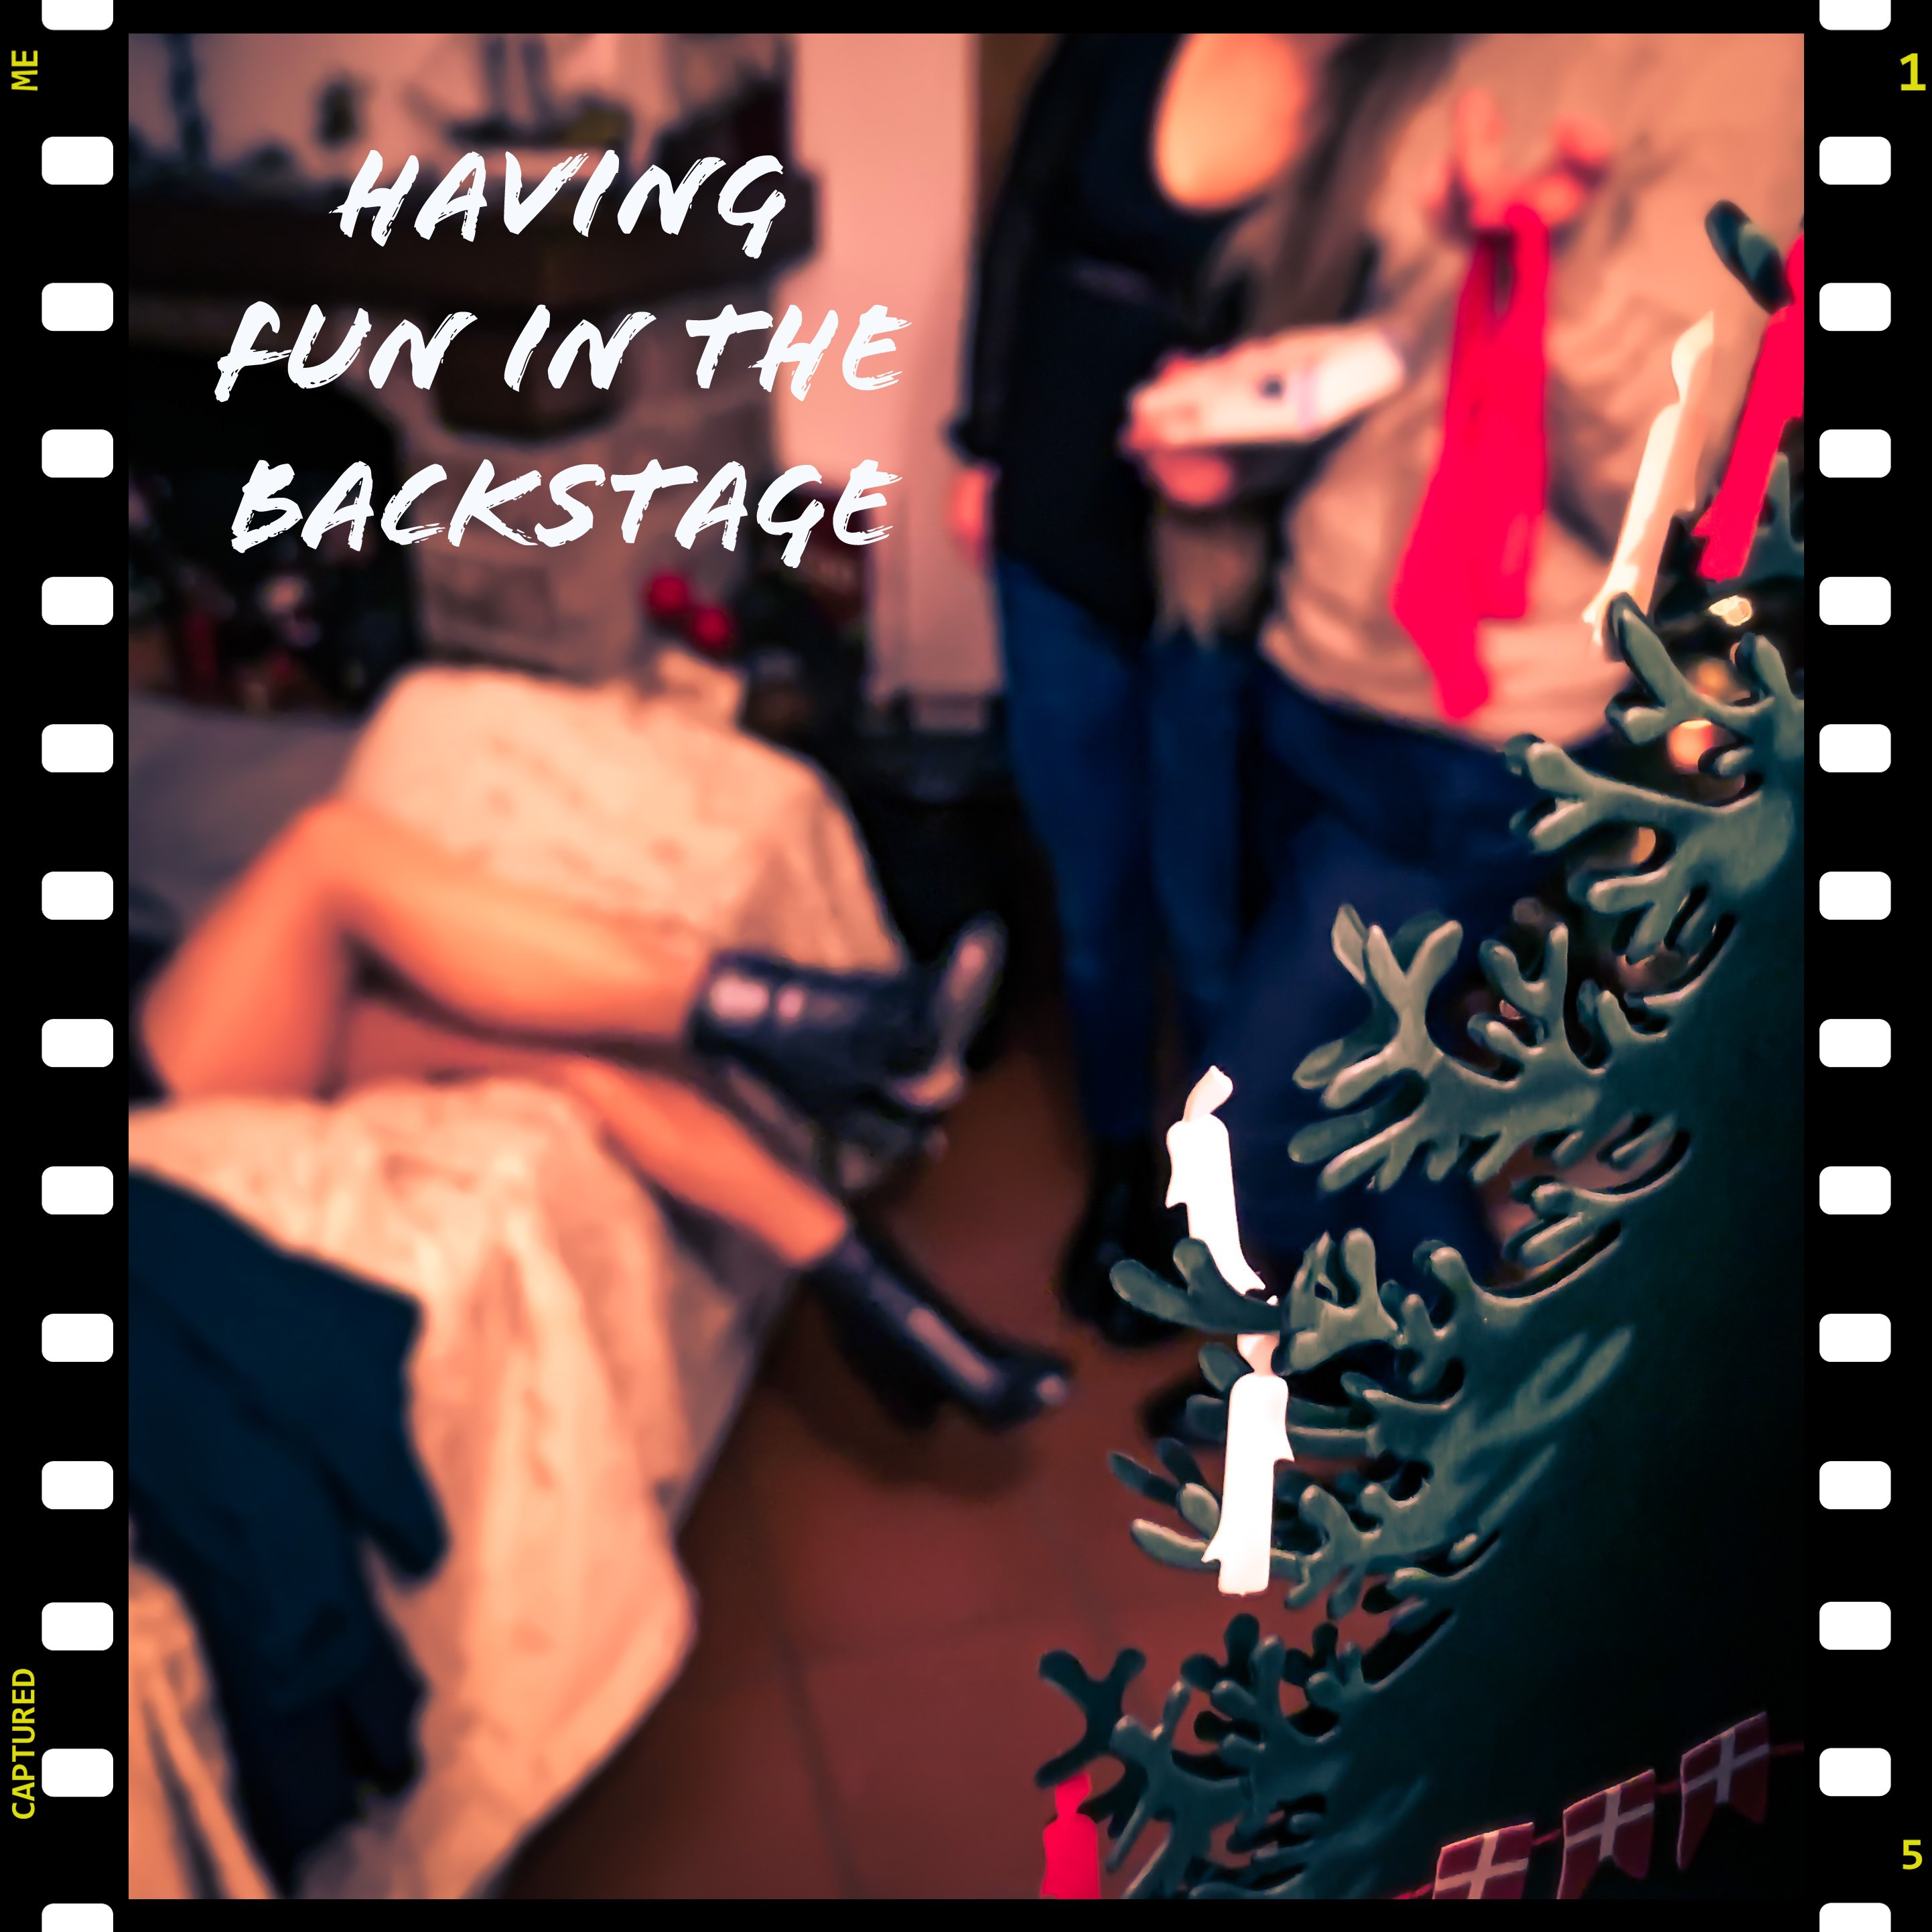 A little fun in the backstage